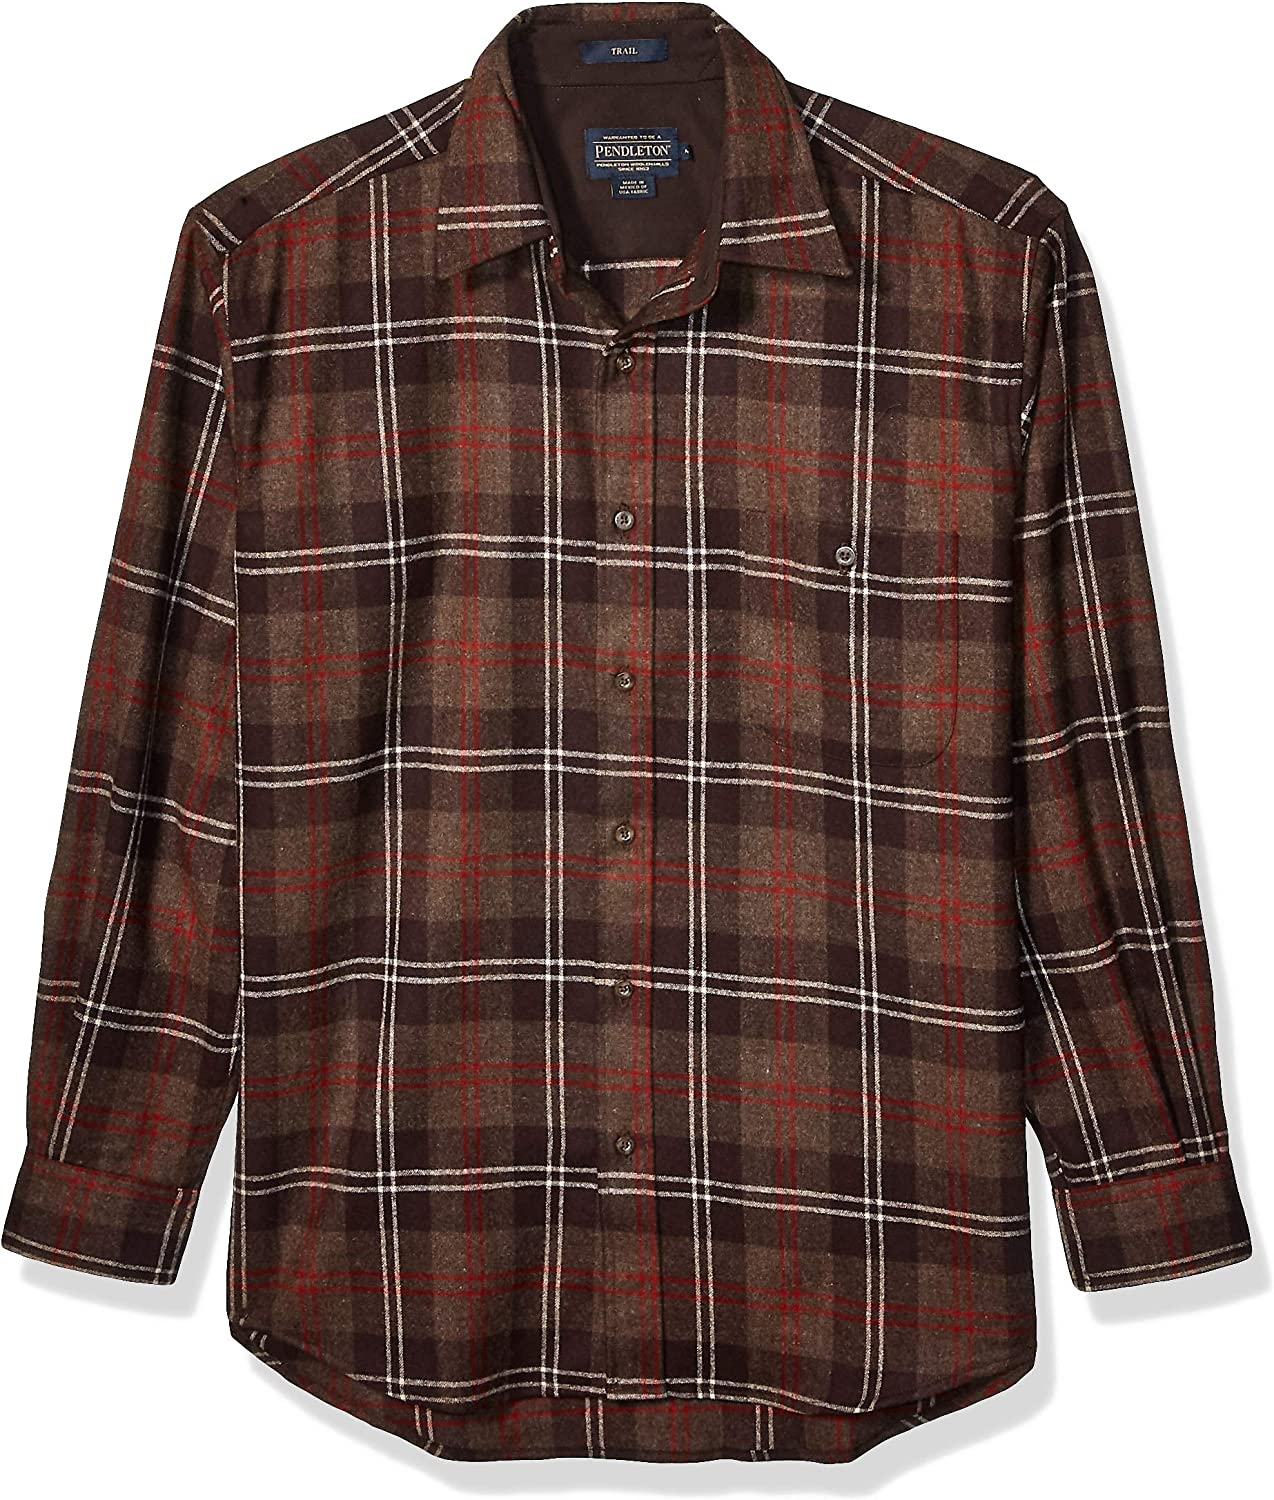 Image of Pendleton Men's Long Sleeve Button Front Classic-fit Trail Shirt